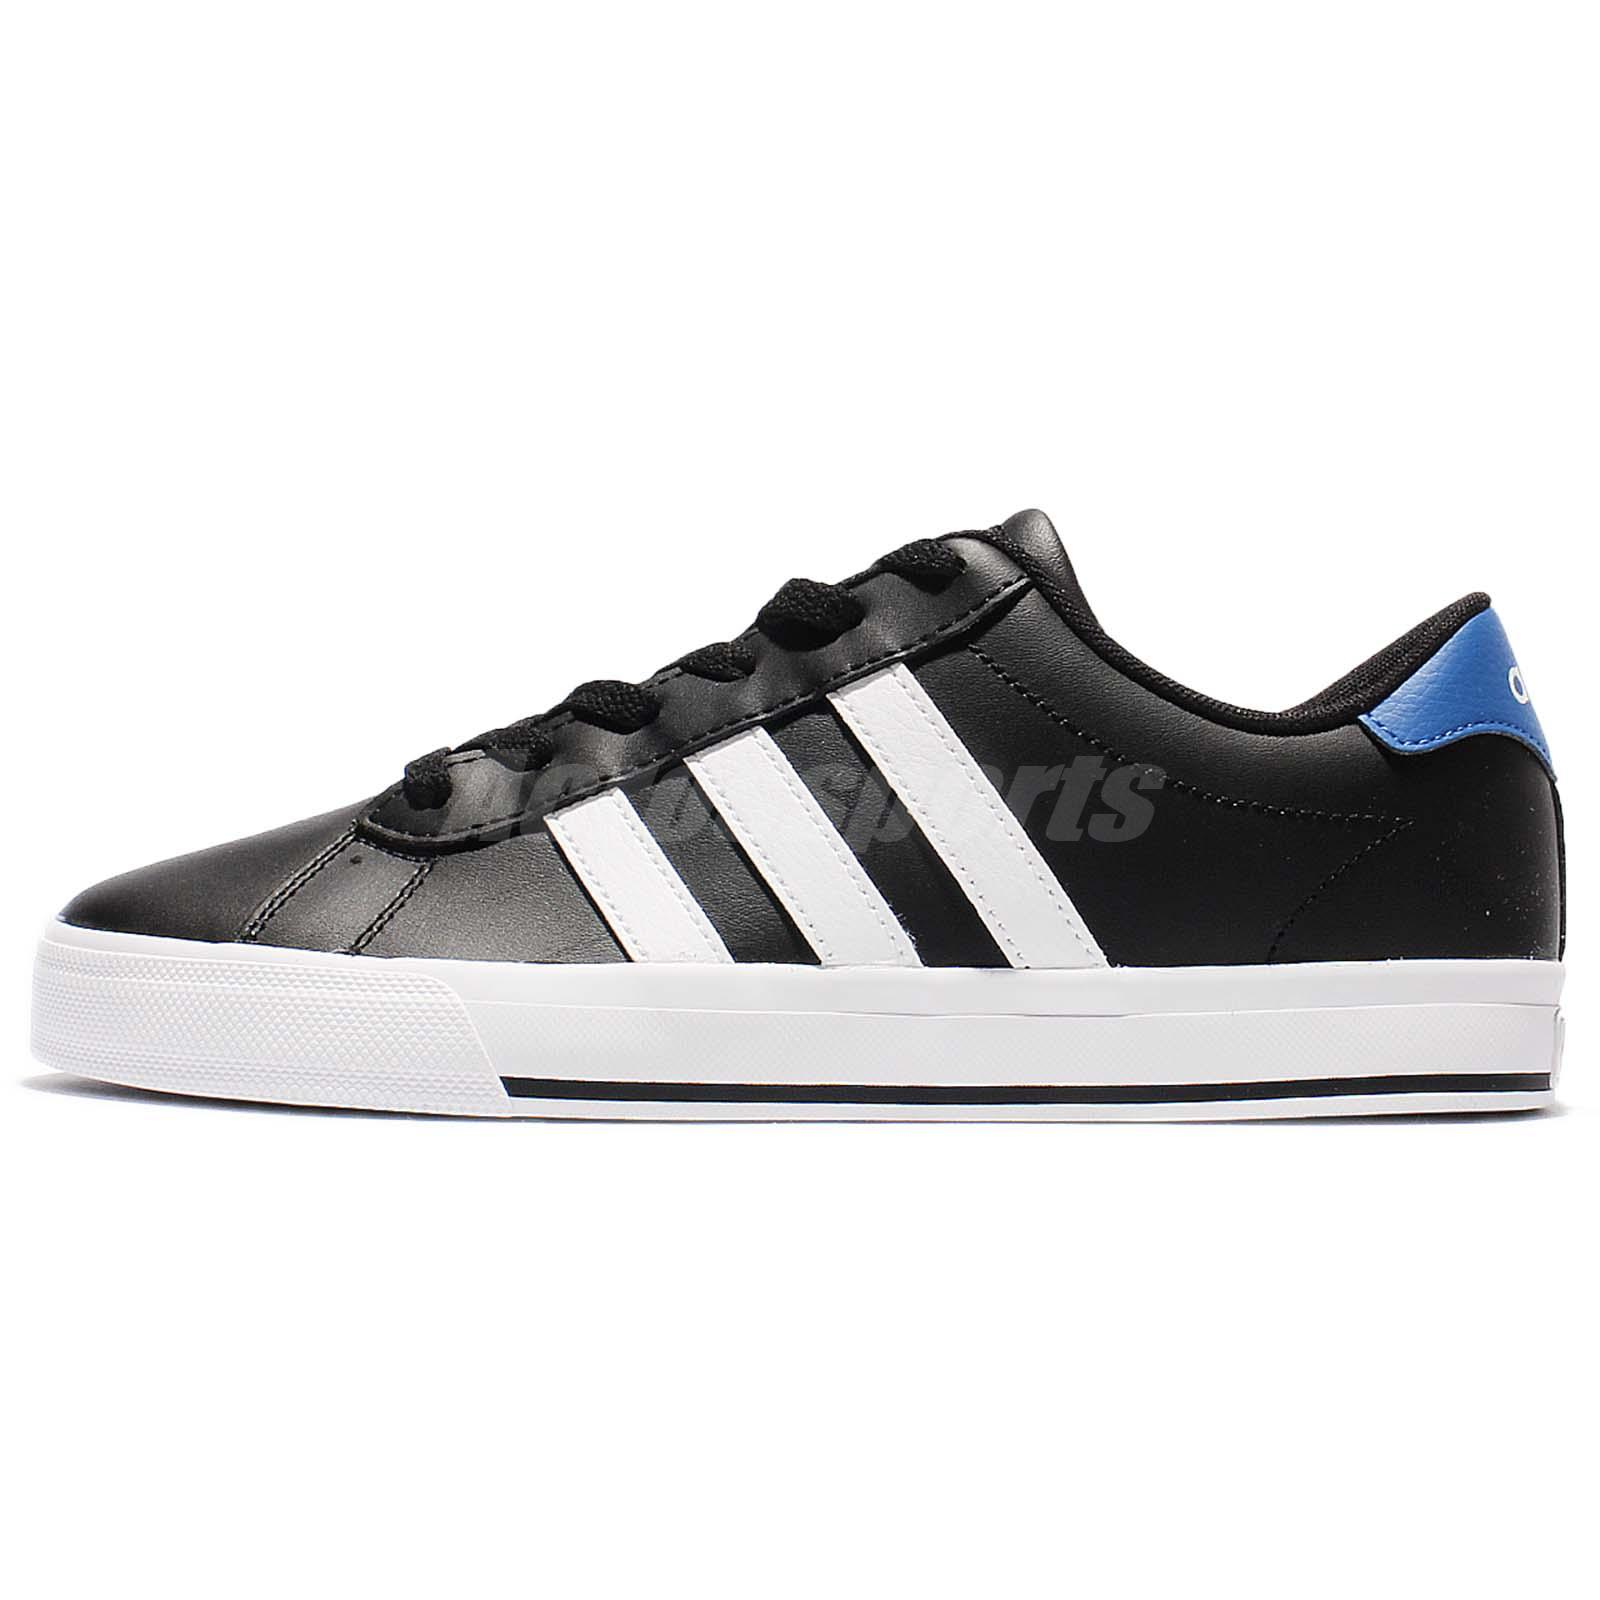 sports shoes 665f0 3c8e0 ... adidas Neo Daily Black White Blue Leather Men Classic Shoes Sneakers  B74479 ...